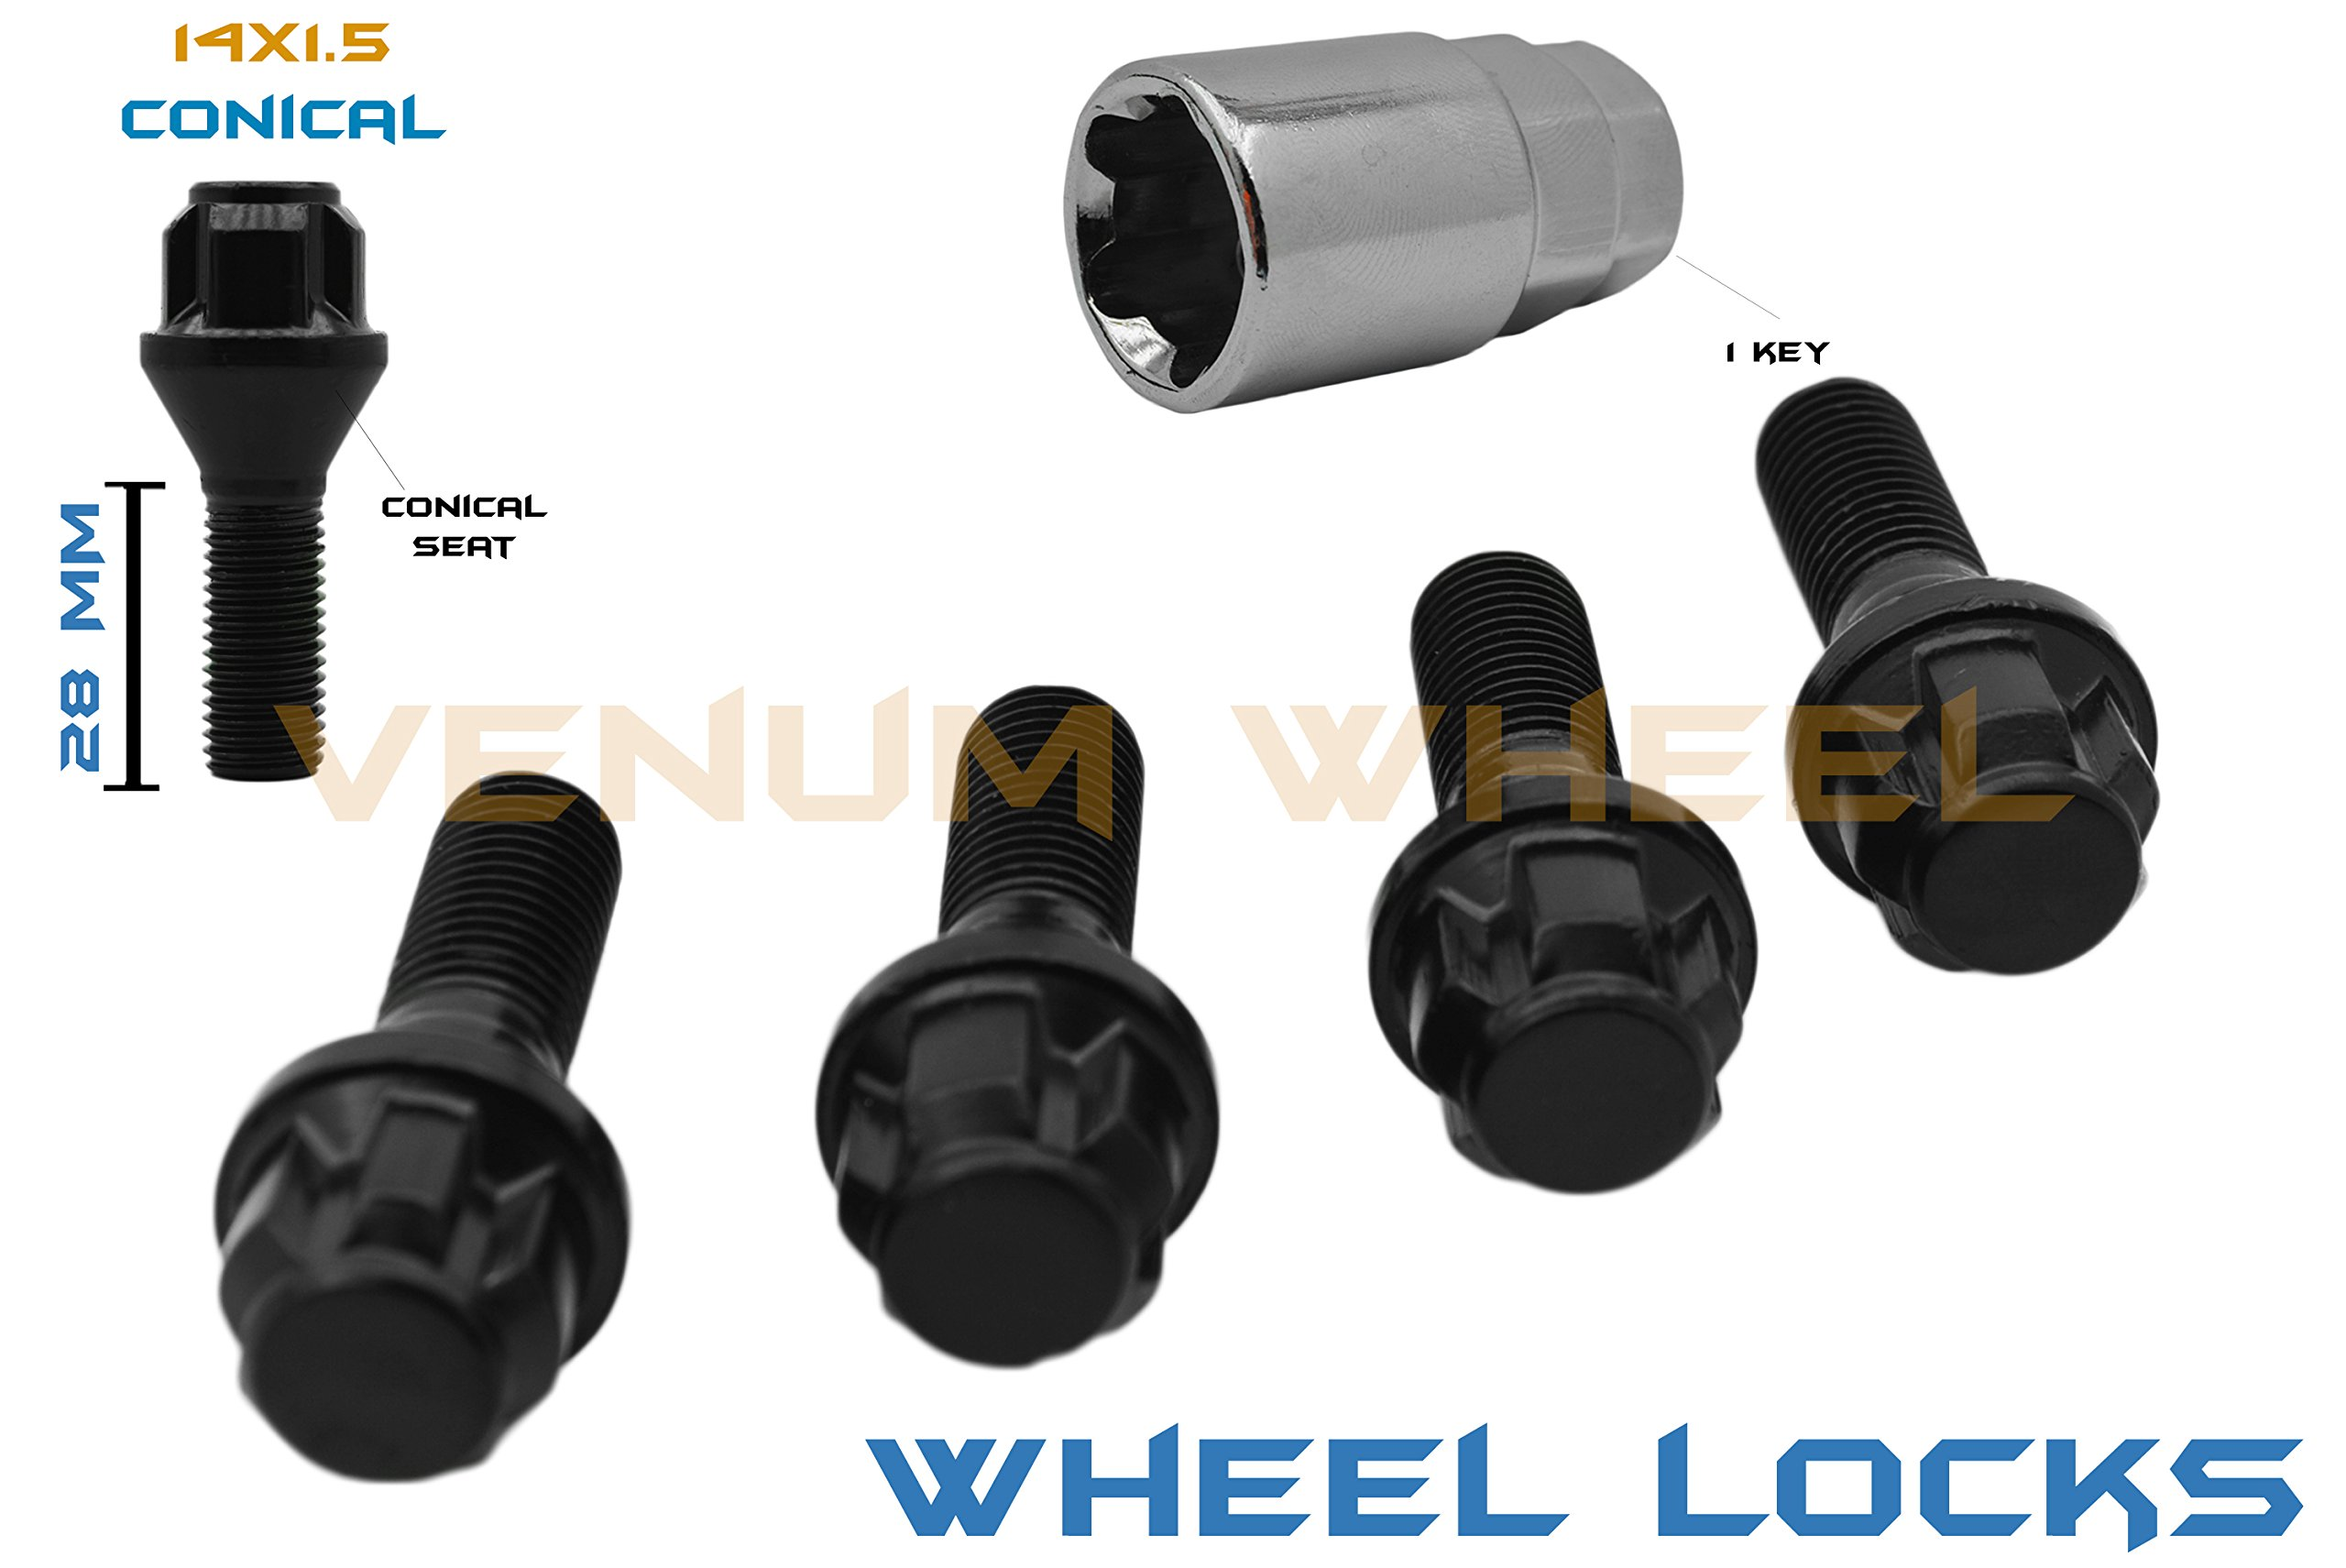 5 Pc Black Wheel Locks 14x1.5 Locking Bolts Lock Steel 28mm Stock Shank Lug Bolts With Key Tool Included Fits Audi Bmw Mercedes Benz Porsche Volkswagen